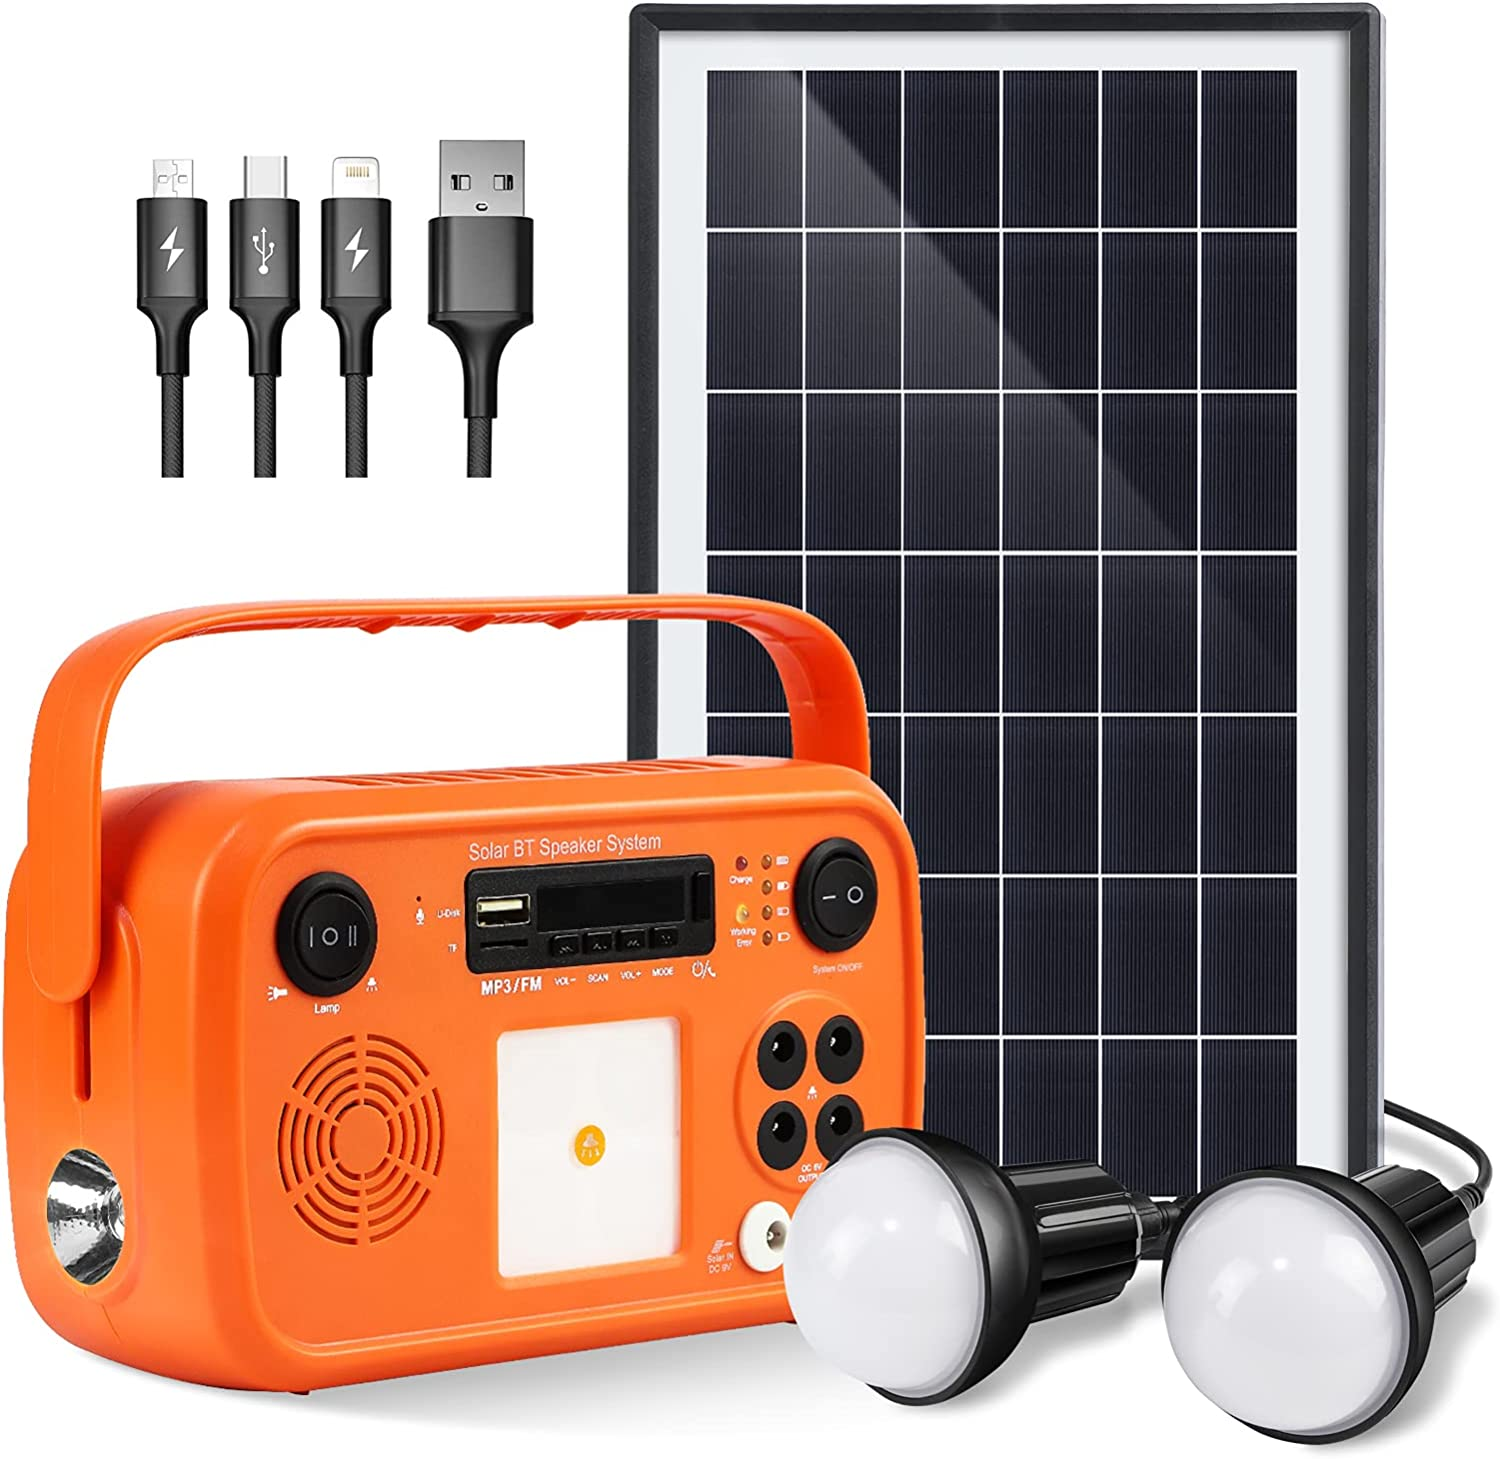 Portable Power Station With Solar Panel Kit Solar Generator Included Battery Generator Camping Generator Solar Panels For Homes Emergency Solar Plug Outlet Generator Outdoor Camping With Fm Radio